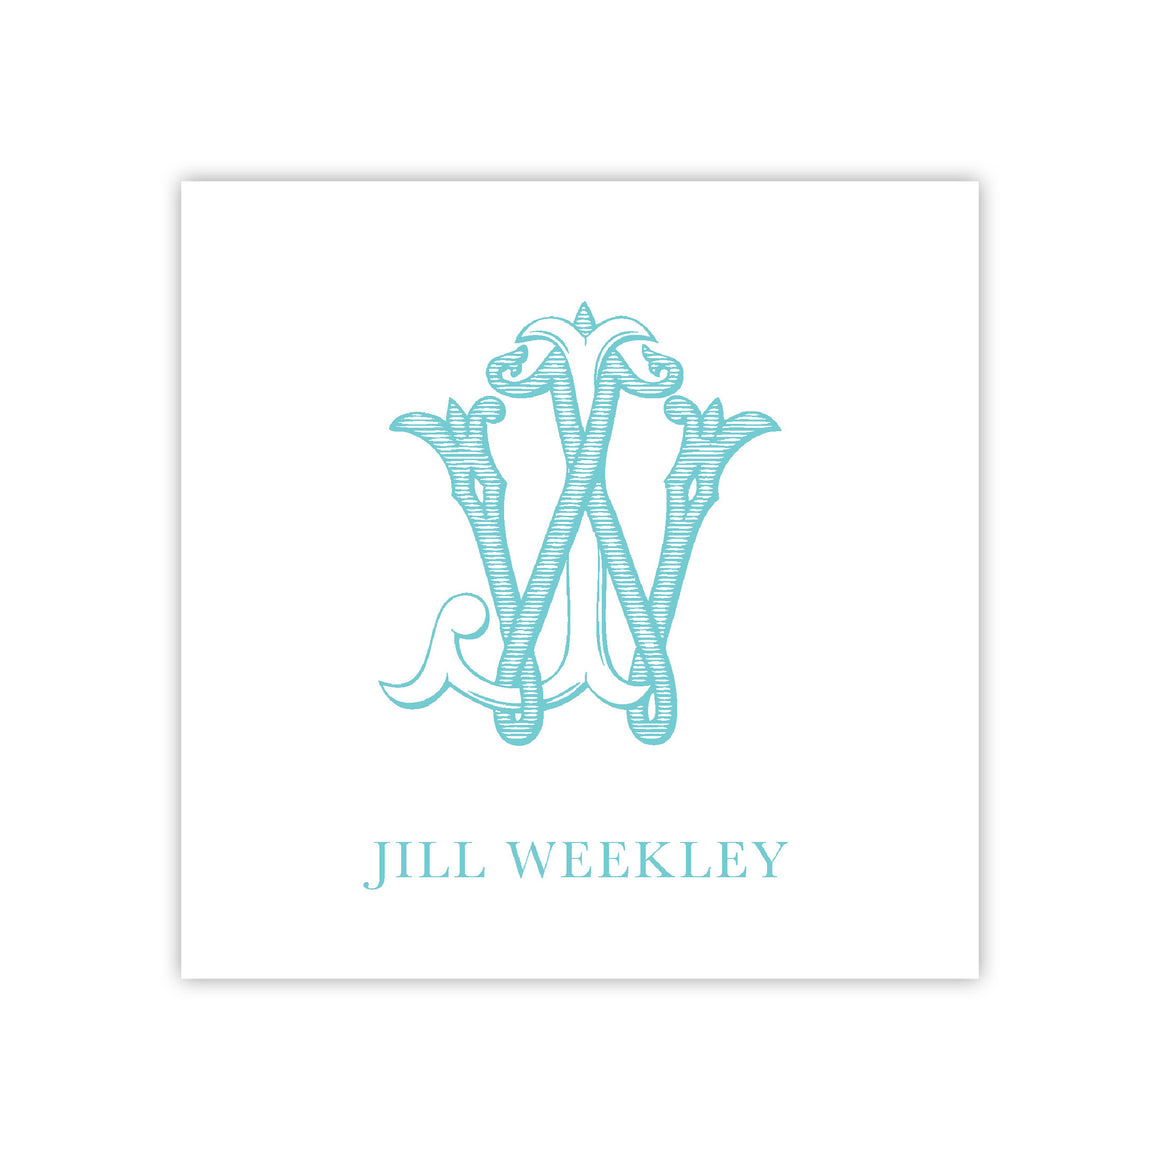 Vintage Monogram Enclosure Card